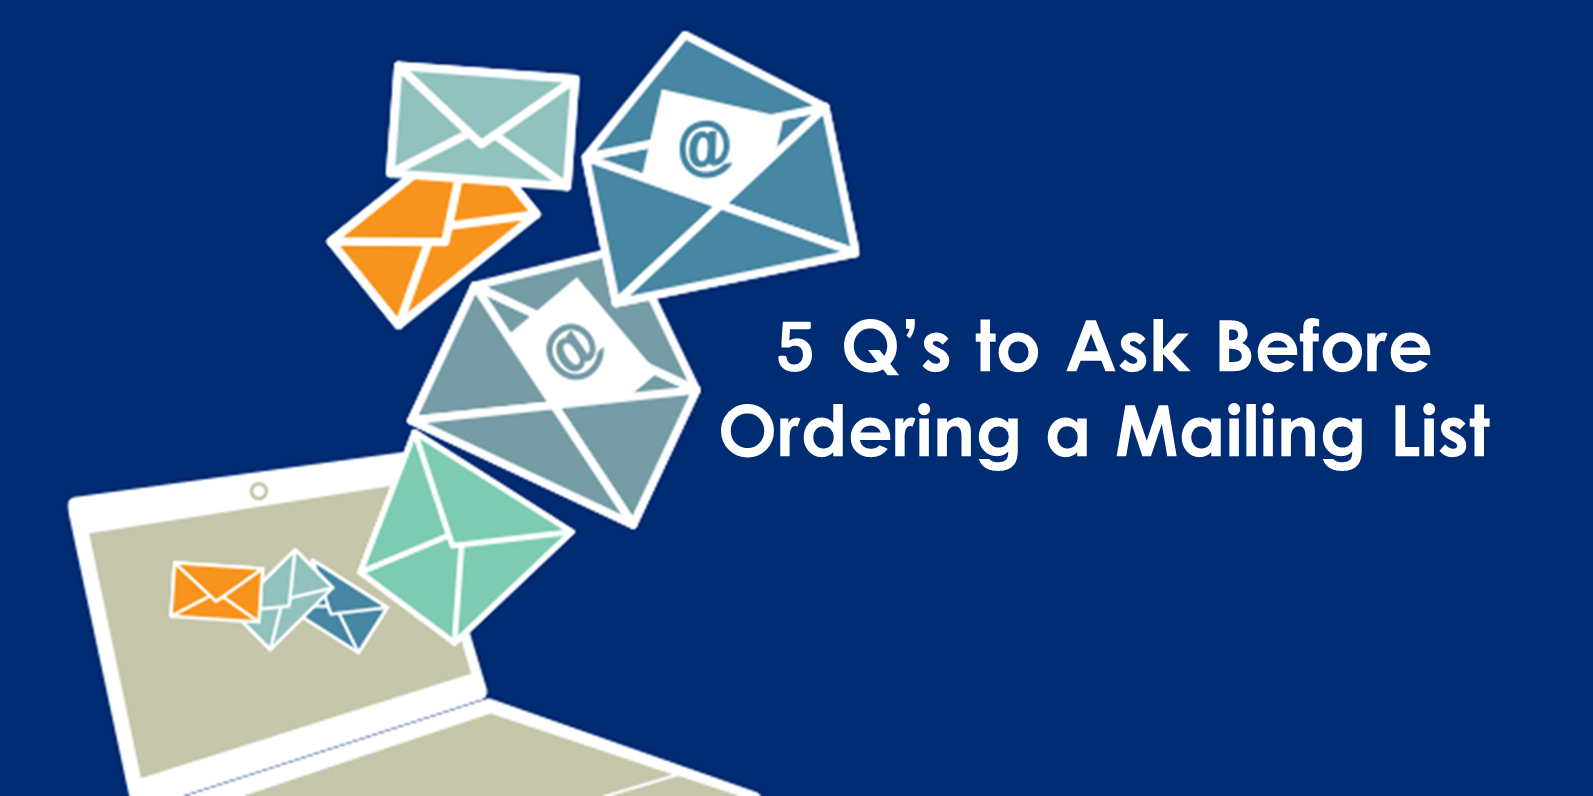 5-qs-mailing-lists-blog-american-name-services